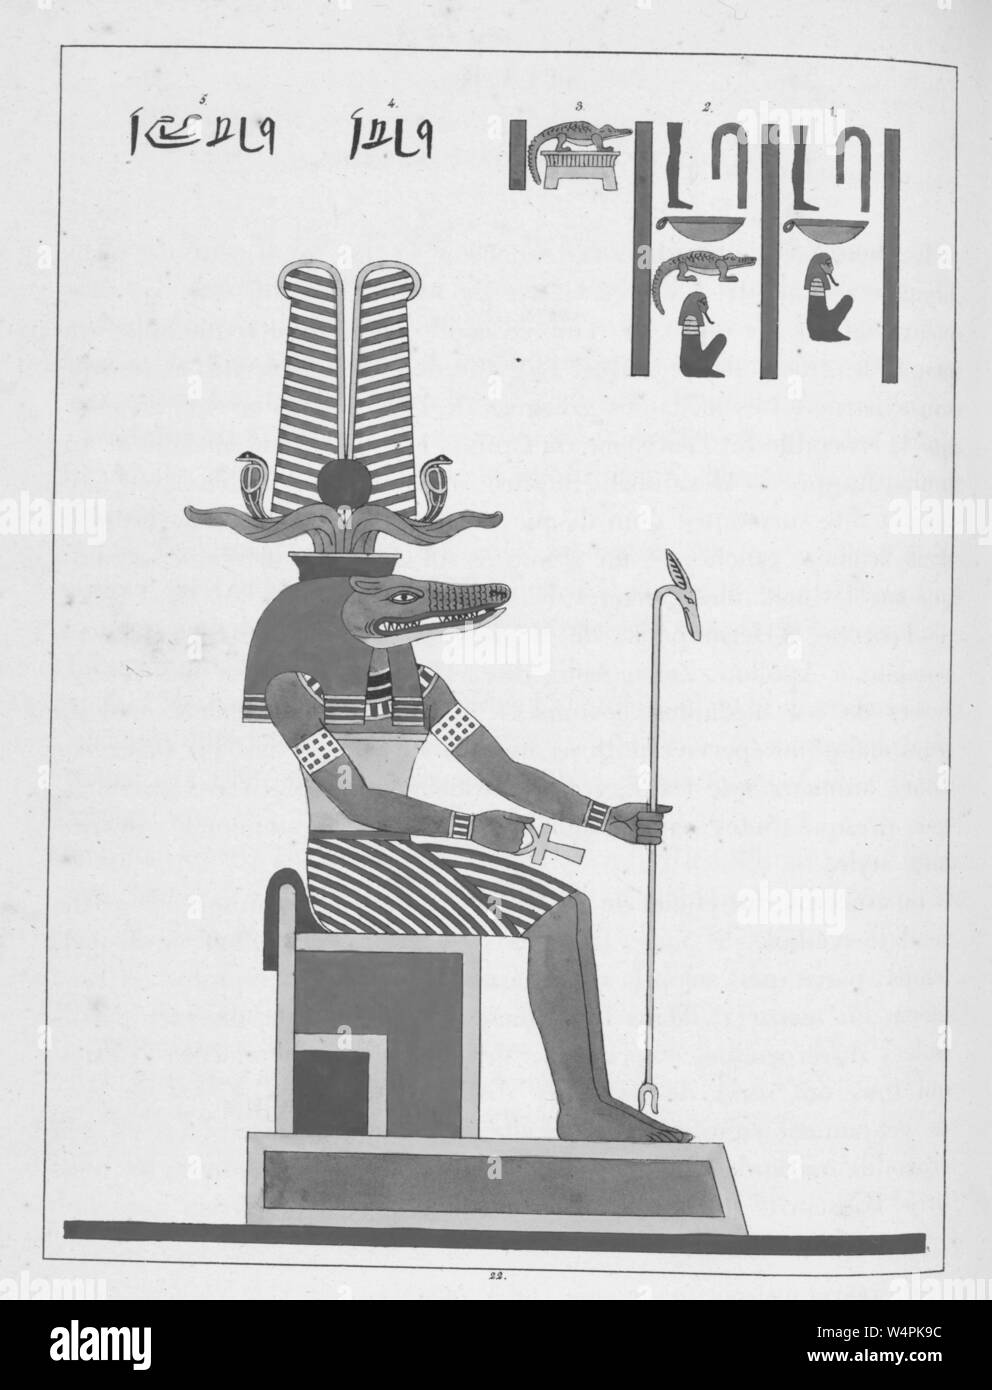 Ancient Egyptian god Sobek, a protective deity against the dangers presented by the Nile, a human with a crocodile head, illustration from the book 'Pantheon Egyptien' by Leon Jean Joseph Dubois, 1824. () Stock Photo